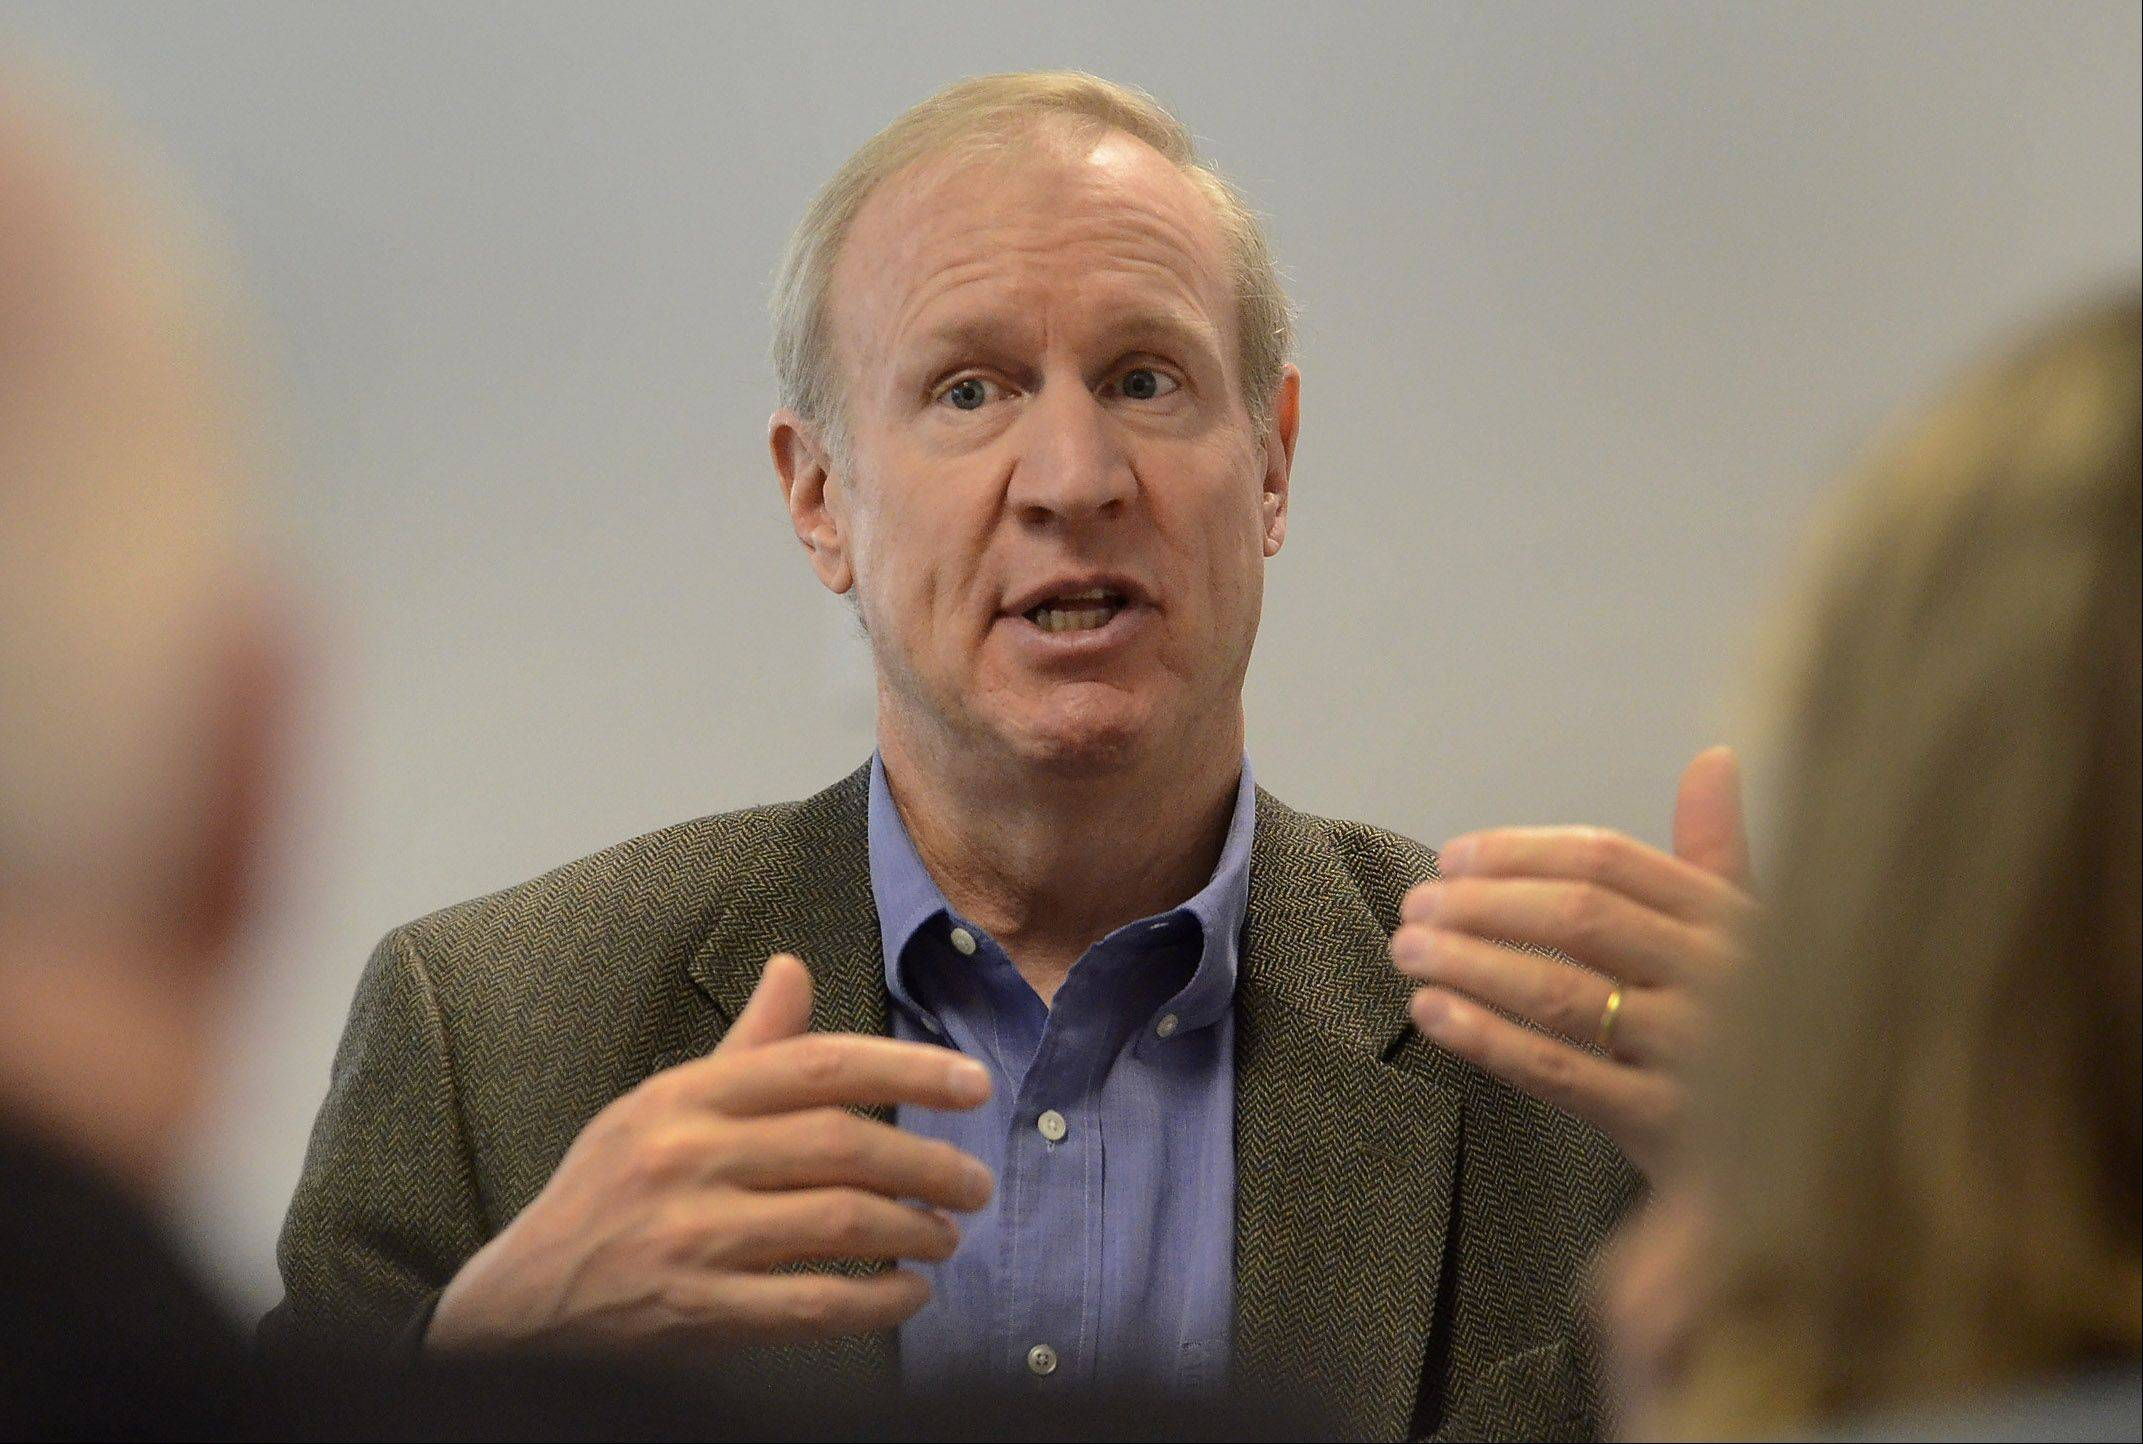 Potential GOP gubernatorial candidate Bruce Rauner says some of his major focuses during an official campaign would be education reform and cleaning up Springfield.